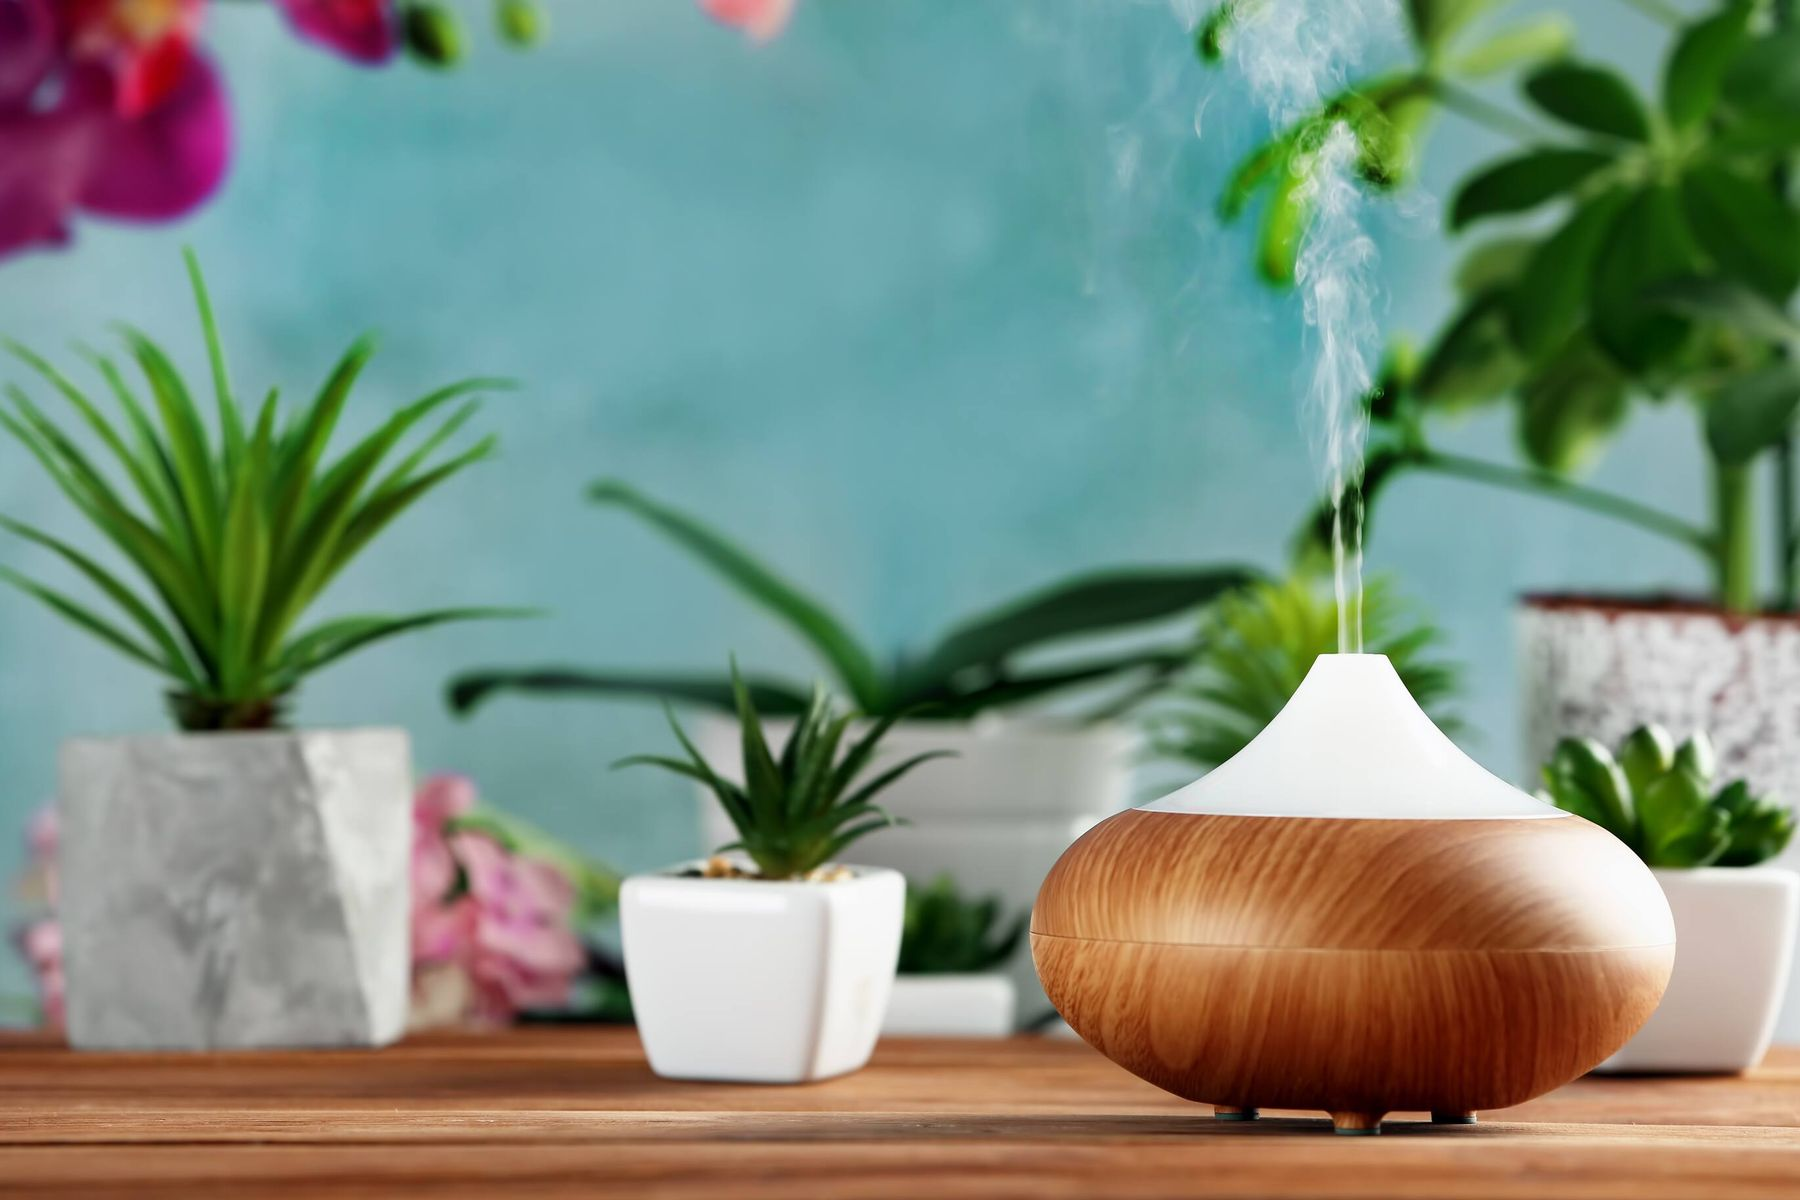 Making an Eco-Friendly Toilet Freshener at Home Has Never Been Easier